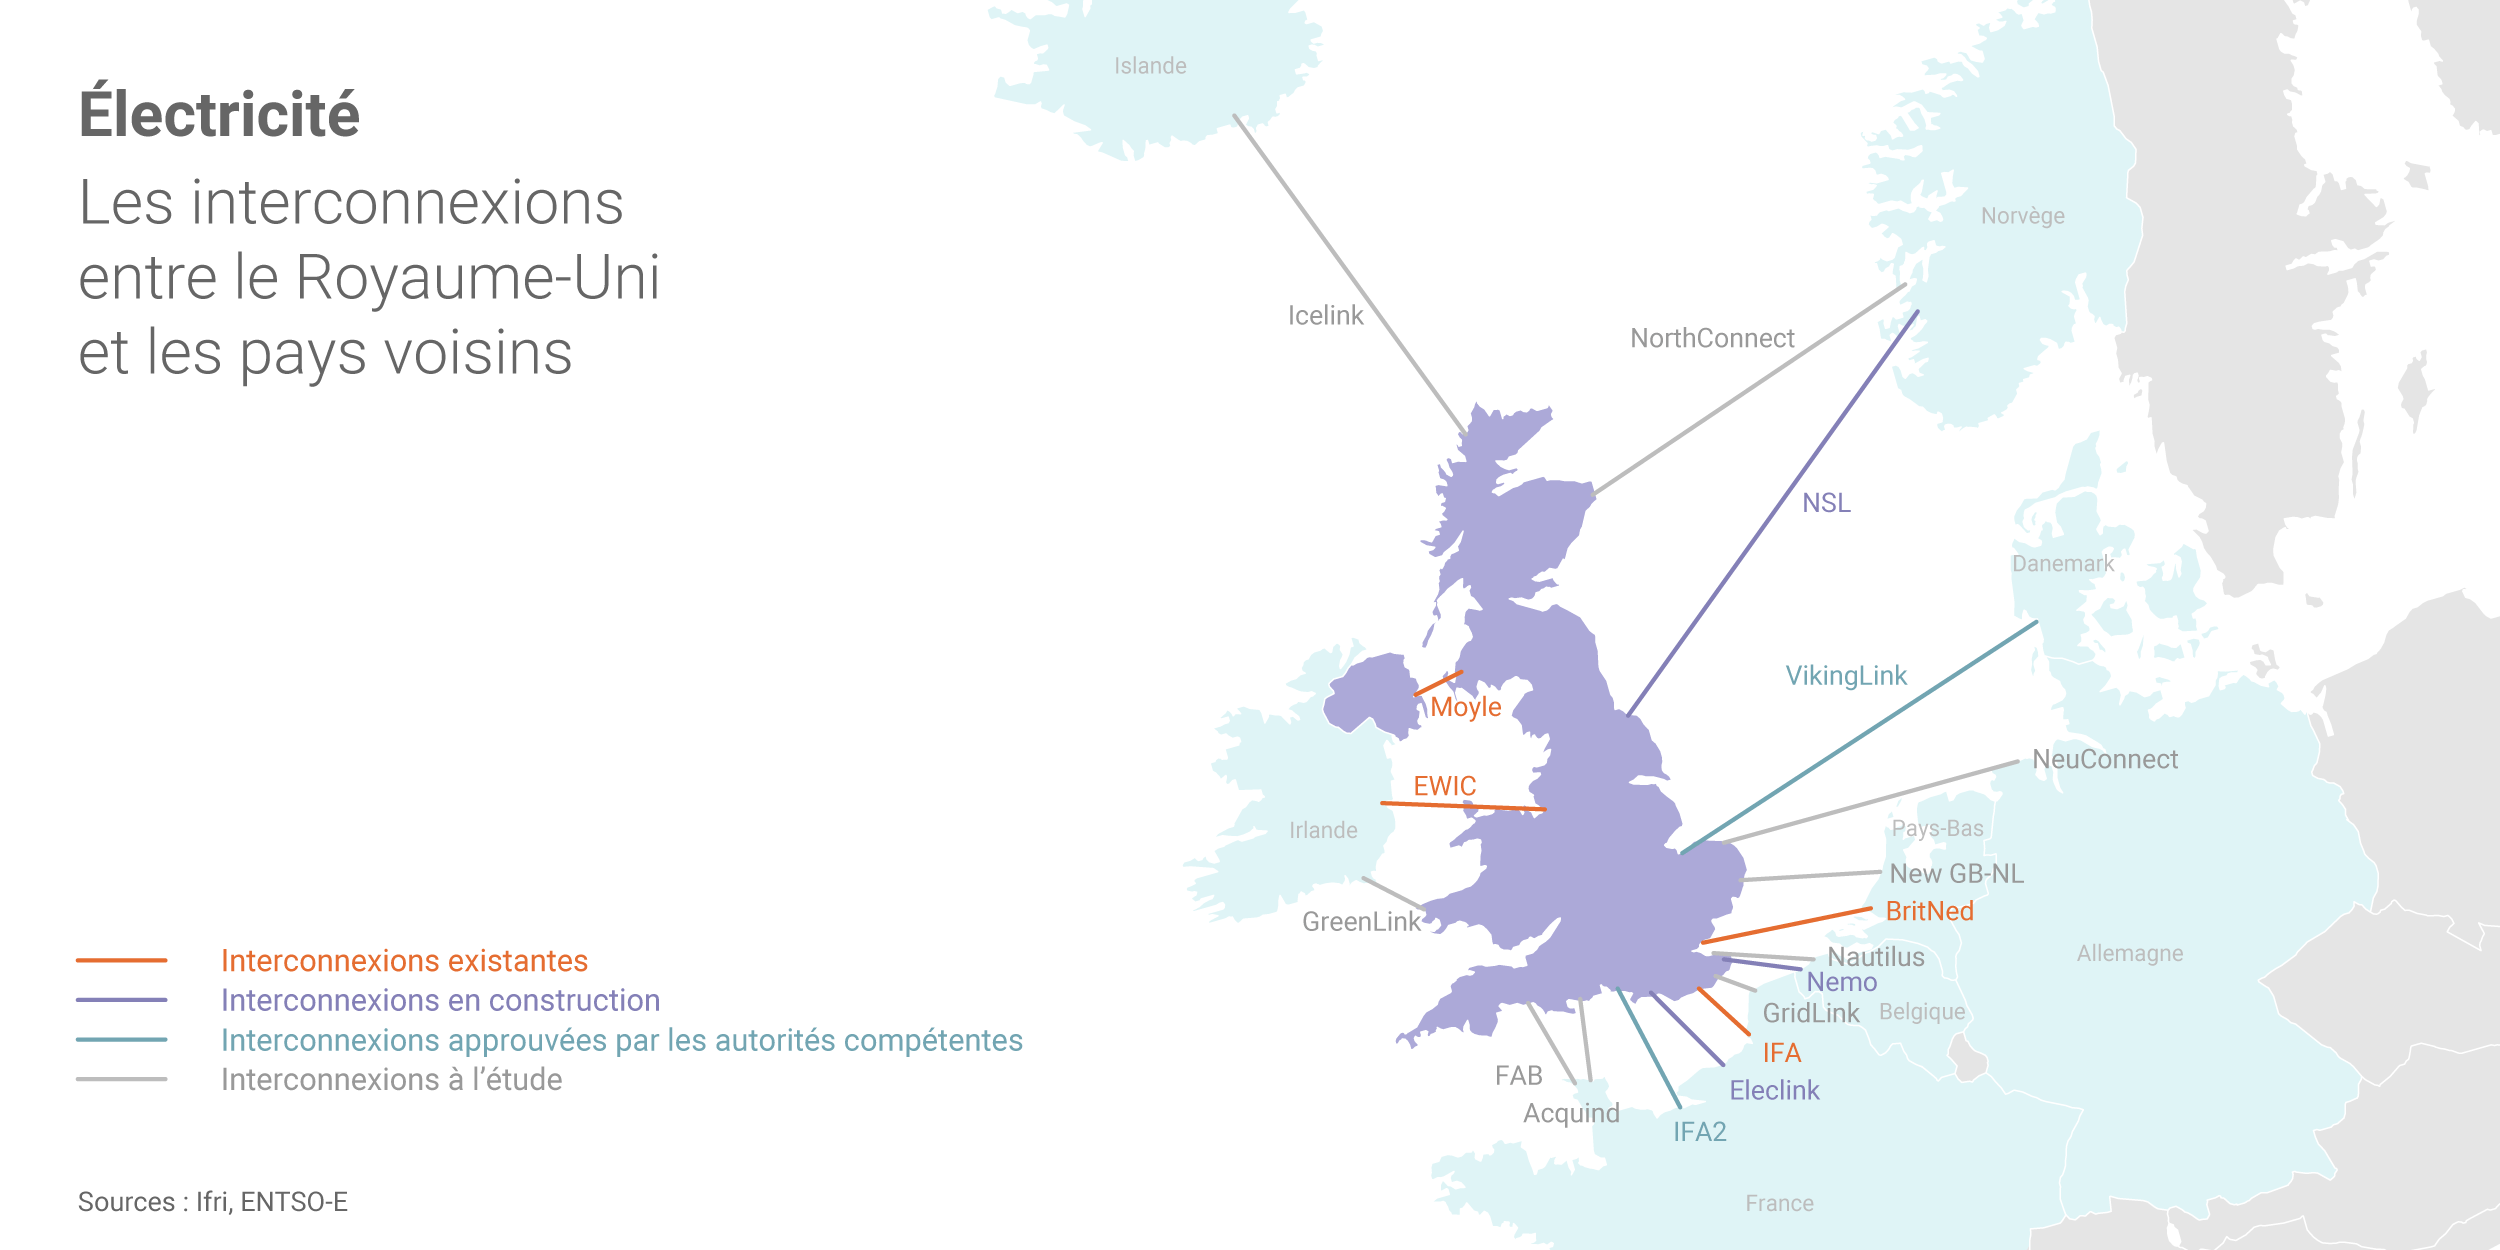 Le Brexit : conséquences - Page 3 Electricite-interconnection-grande-bretagne_zoom